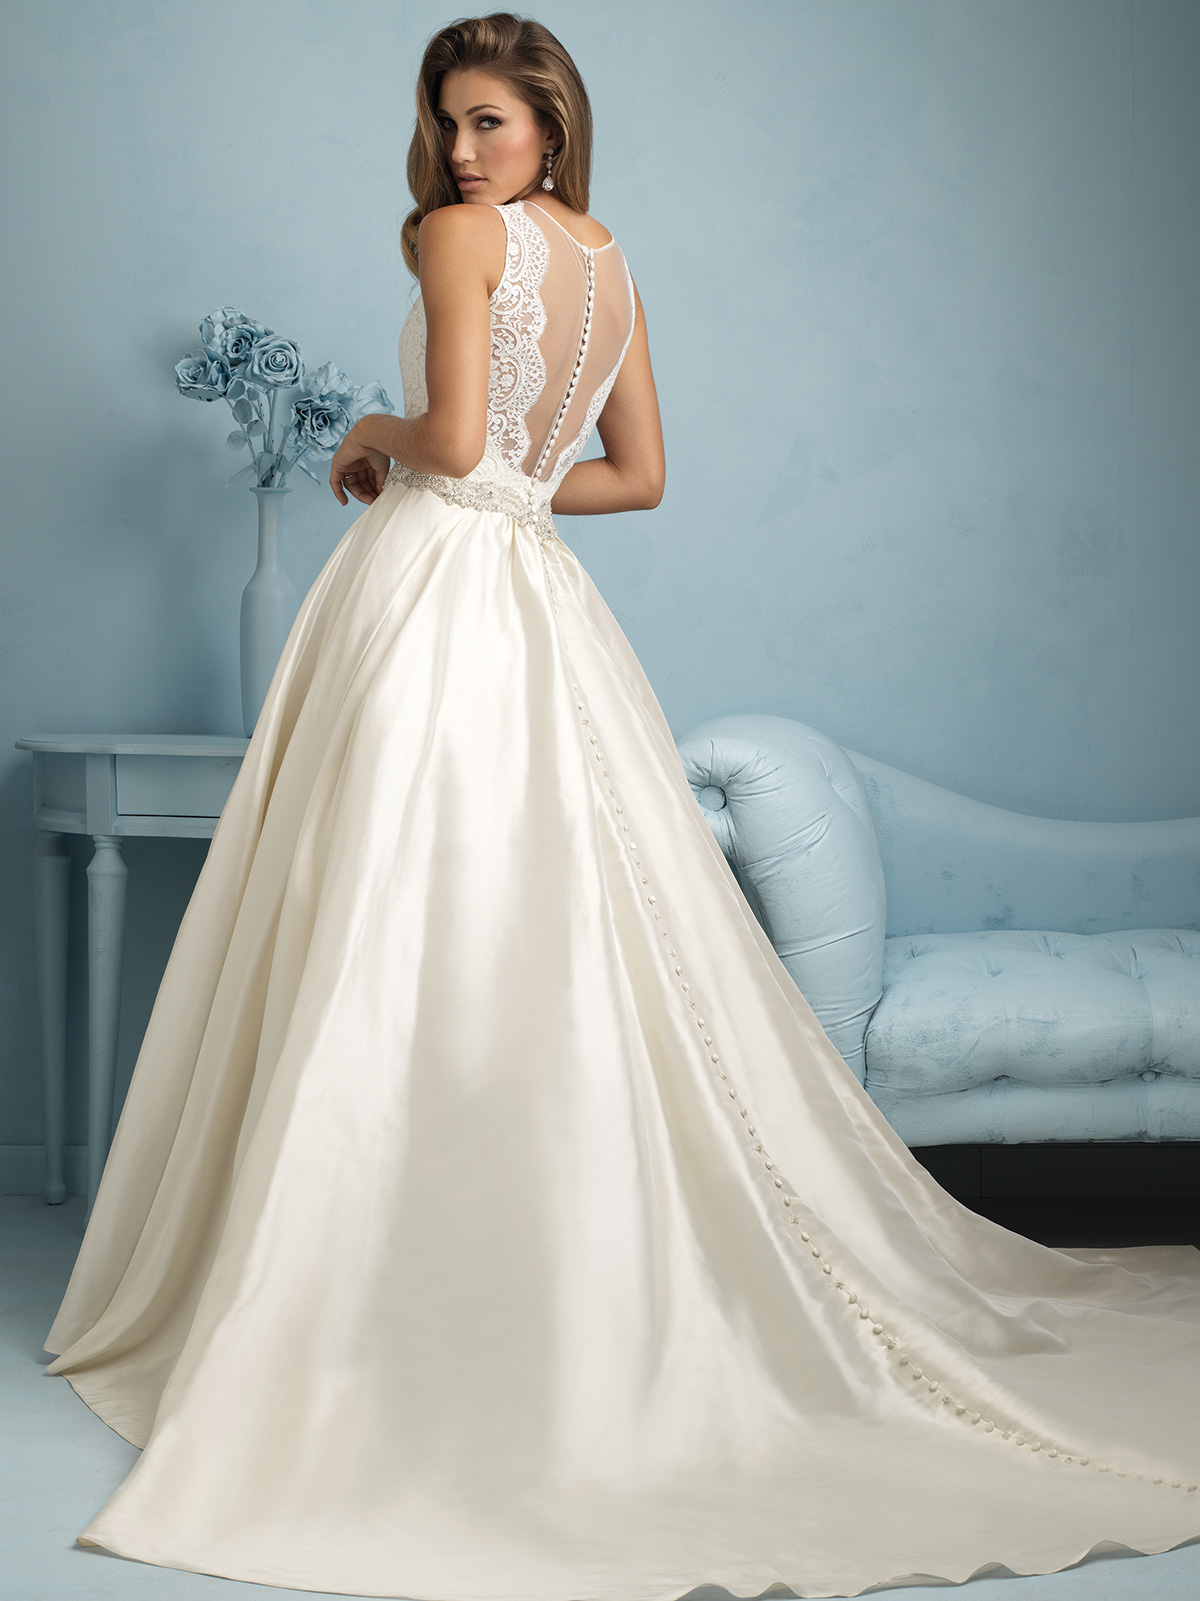 Allure Bridal Dress 9207: DimitraDesigns.com